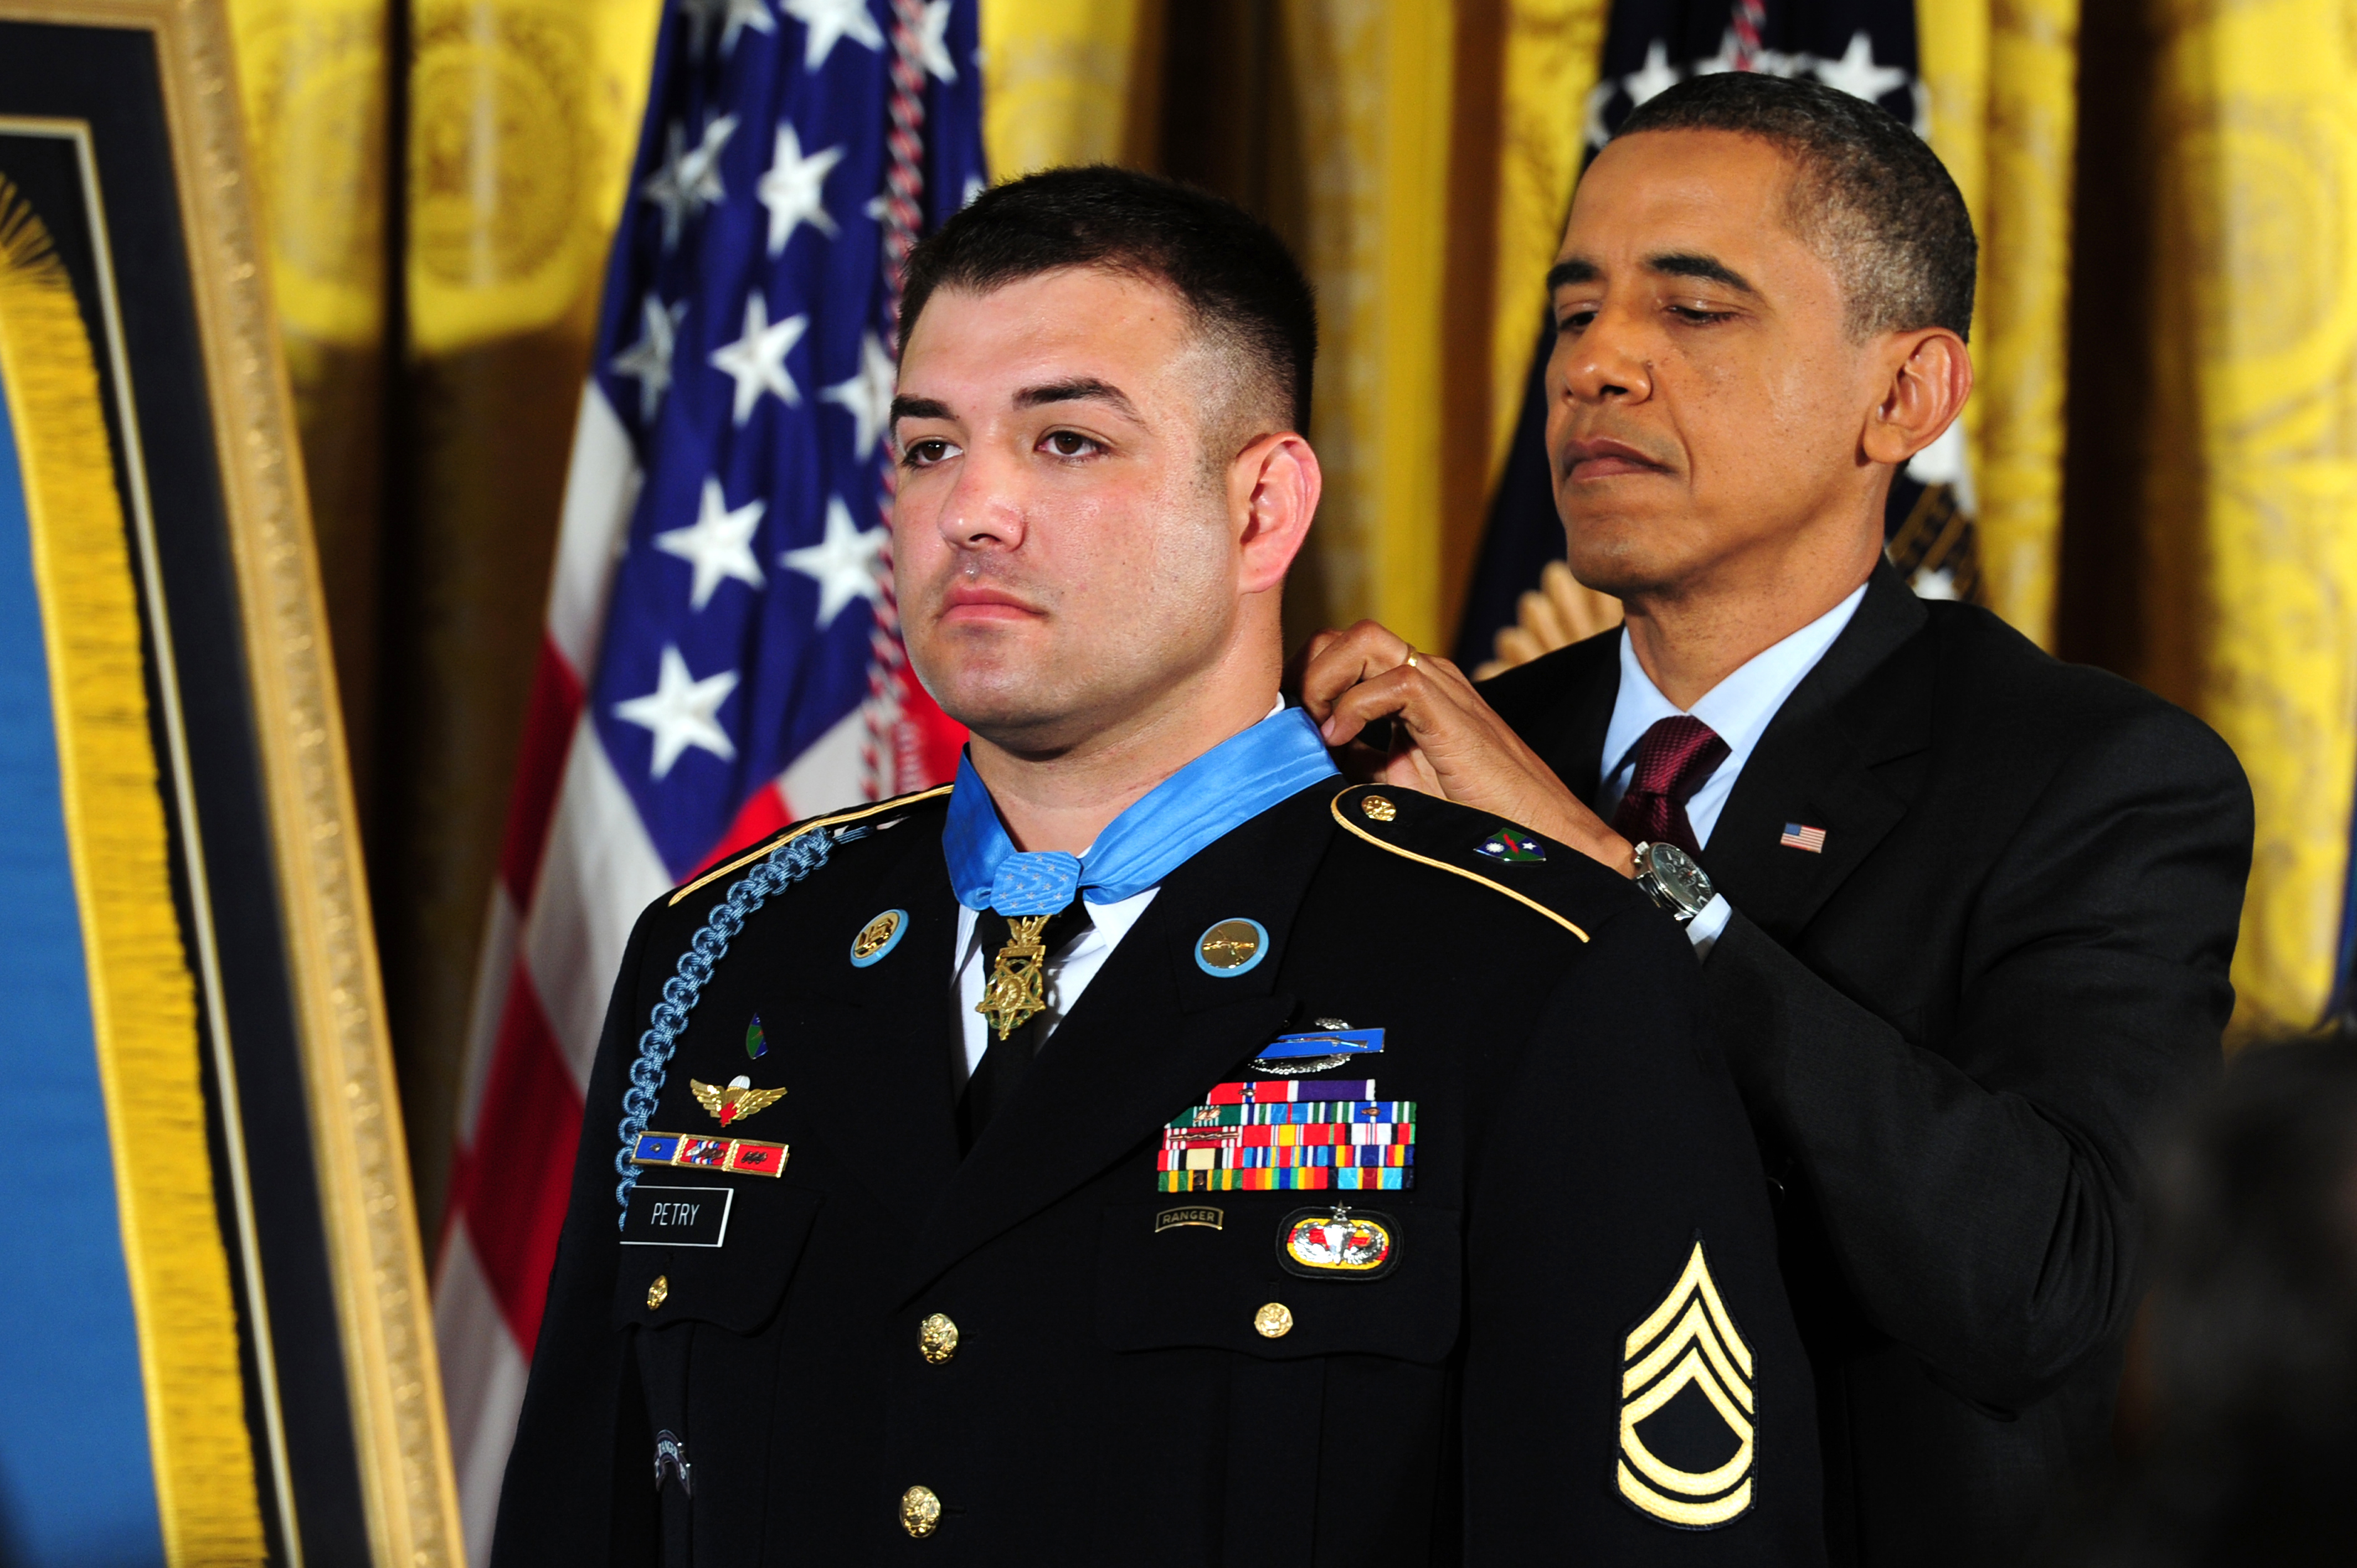 U.S. President Barack H. Obama awards the Medal of honor to US Army Sergeant First Class Leroy Arthur Petry, 75th Ranger Regiment, for his valor in Afghanistan at the White House, Washington D.C. on July 12, 2011. (U.S. Army Photo by Spc. David M. Sharp, AMVID)